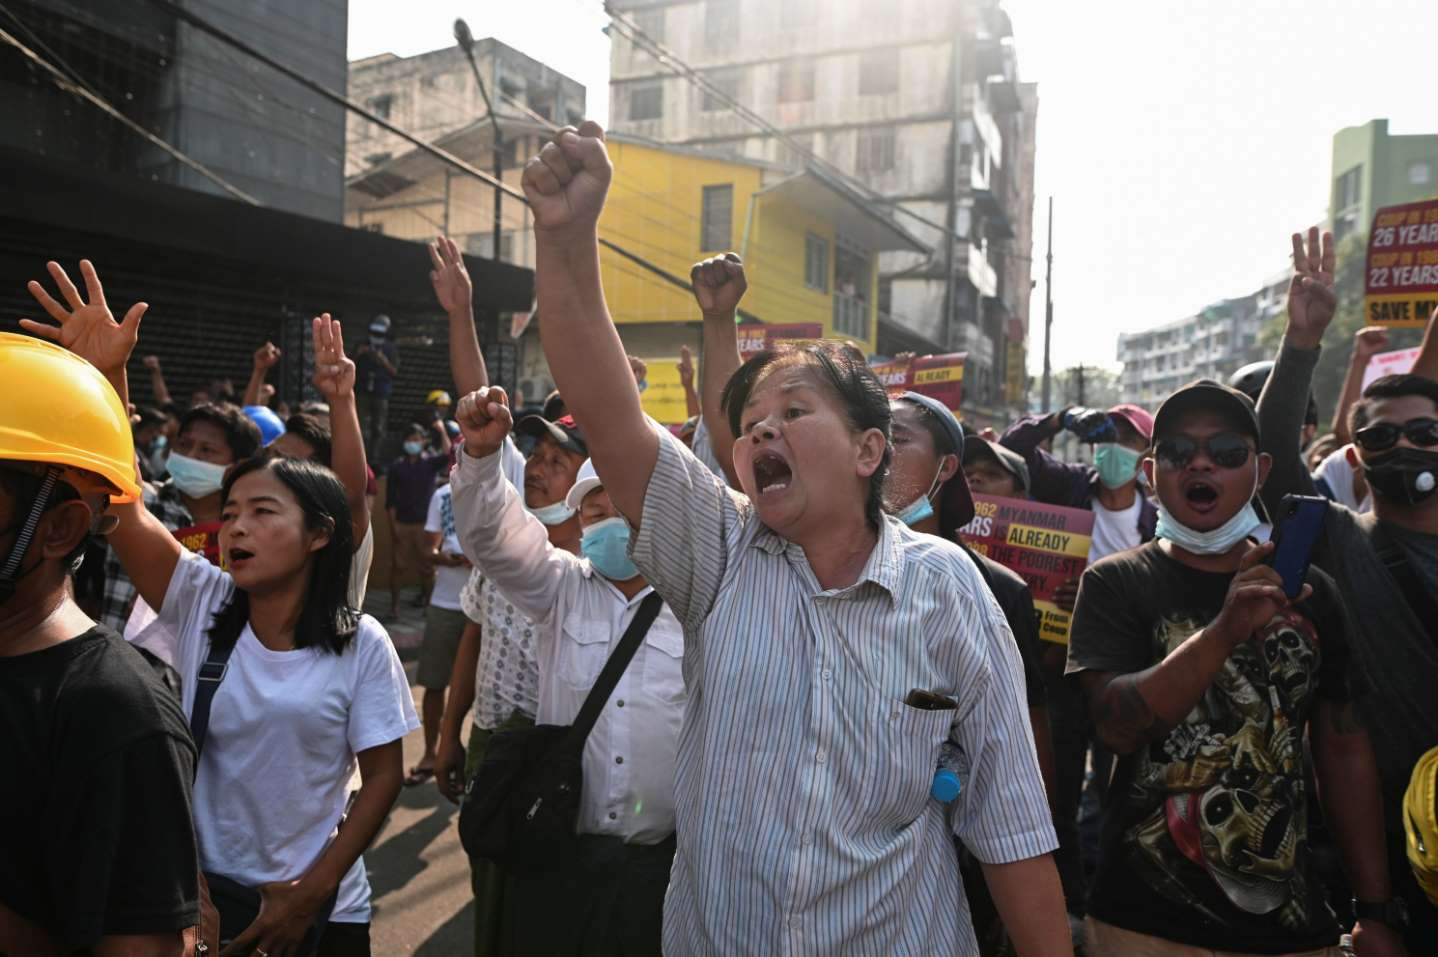 Three-finger salute: Hunger Games symbol adopted by Myanmar protesters. (2021). The Guardian. https://www.theguardian.com/world/2021/feb/08/three-finger-salute-hunger-games-symbol-adopted-by-myanmars-protesters